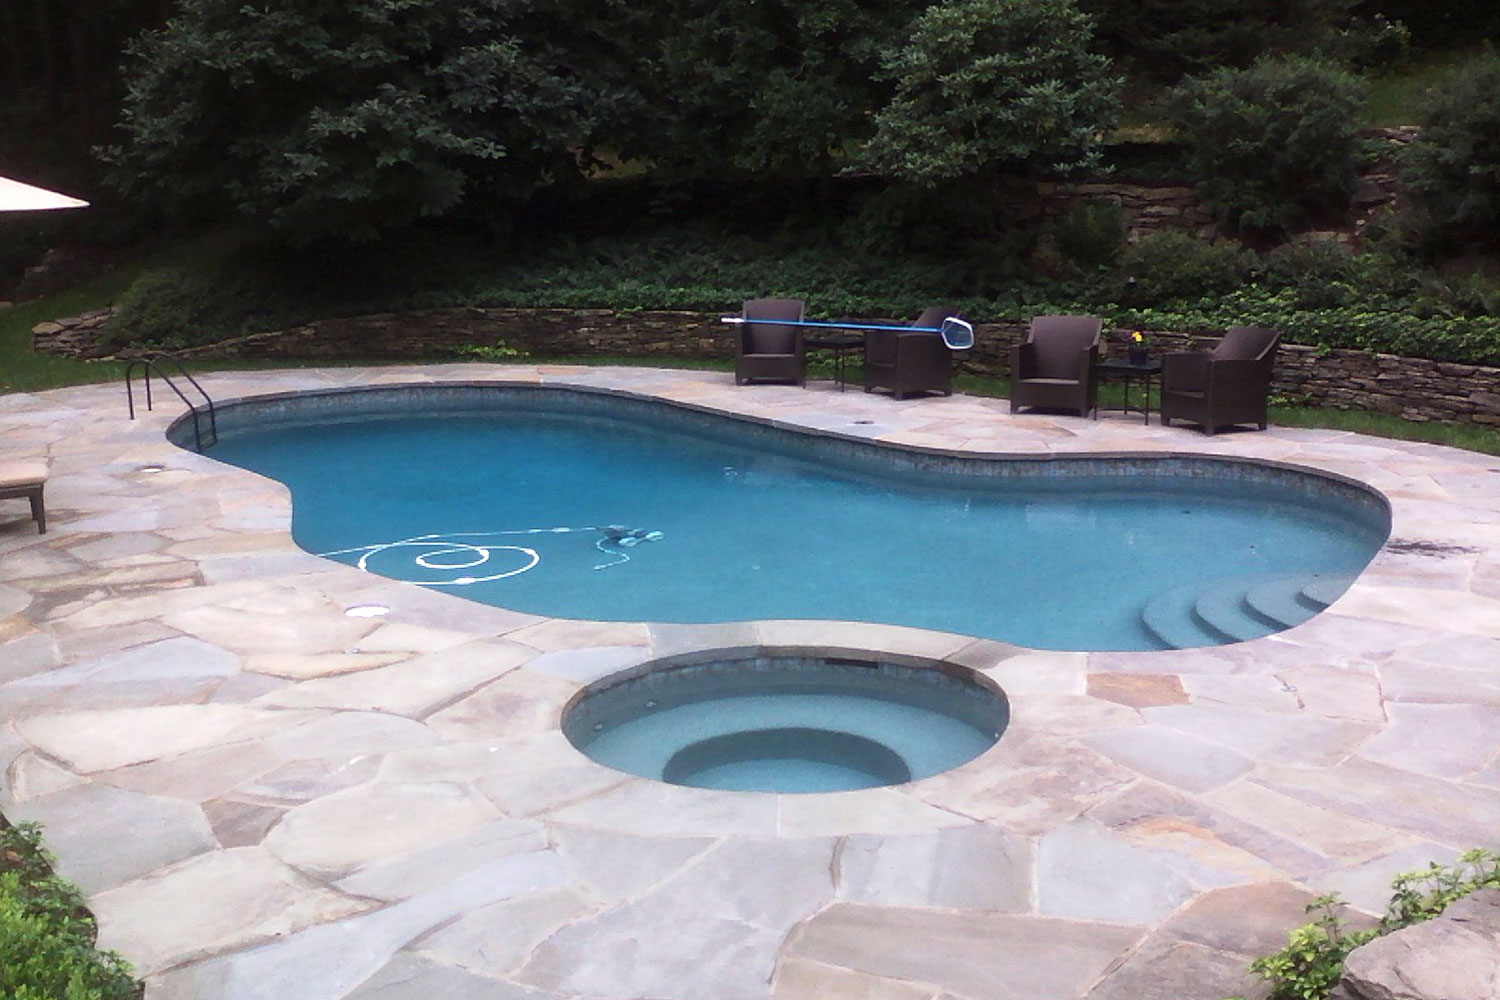 Complete Renovation: New Blue Stone Coping Integral with Deck, Tile, Beautiful Pebble-Tec Interior Finish, In-Pool LED Lighting and 9 Deck Fountains. Fully Automated Smart/Remote Pool/Spa Control System